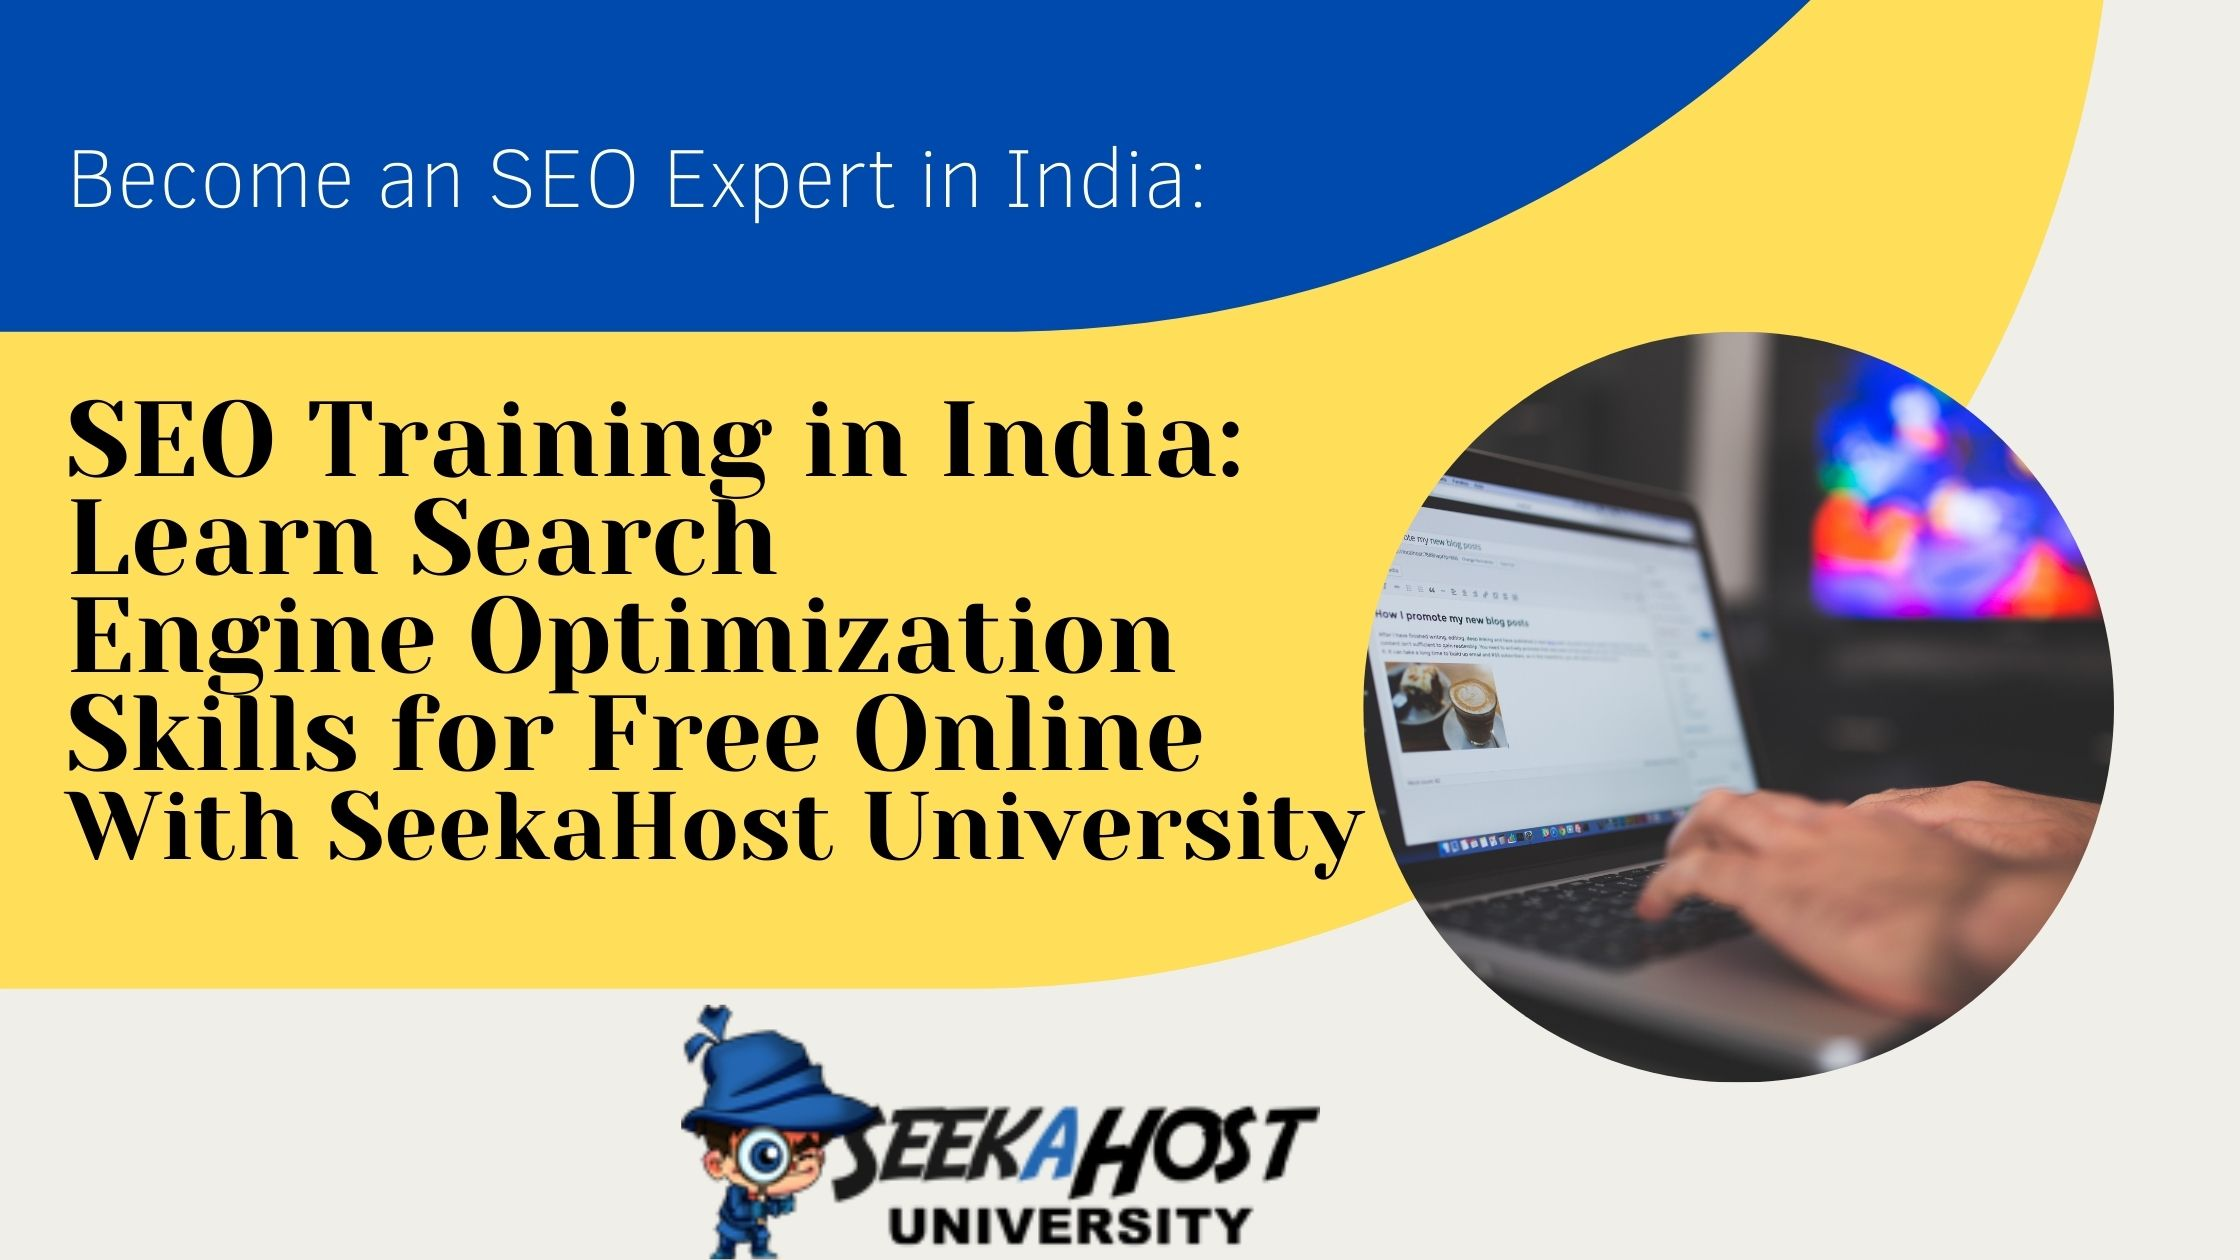 Best-free-SEO-training-course-for-students-in-india-